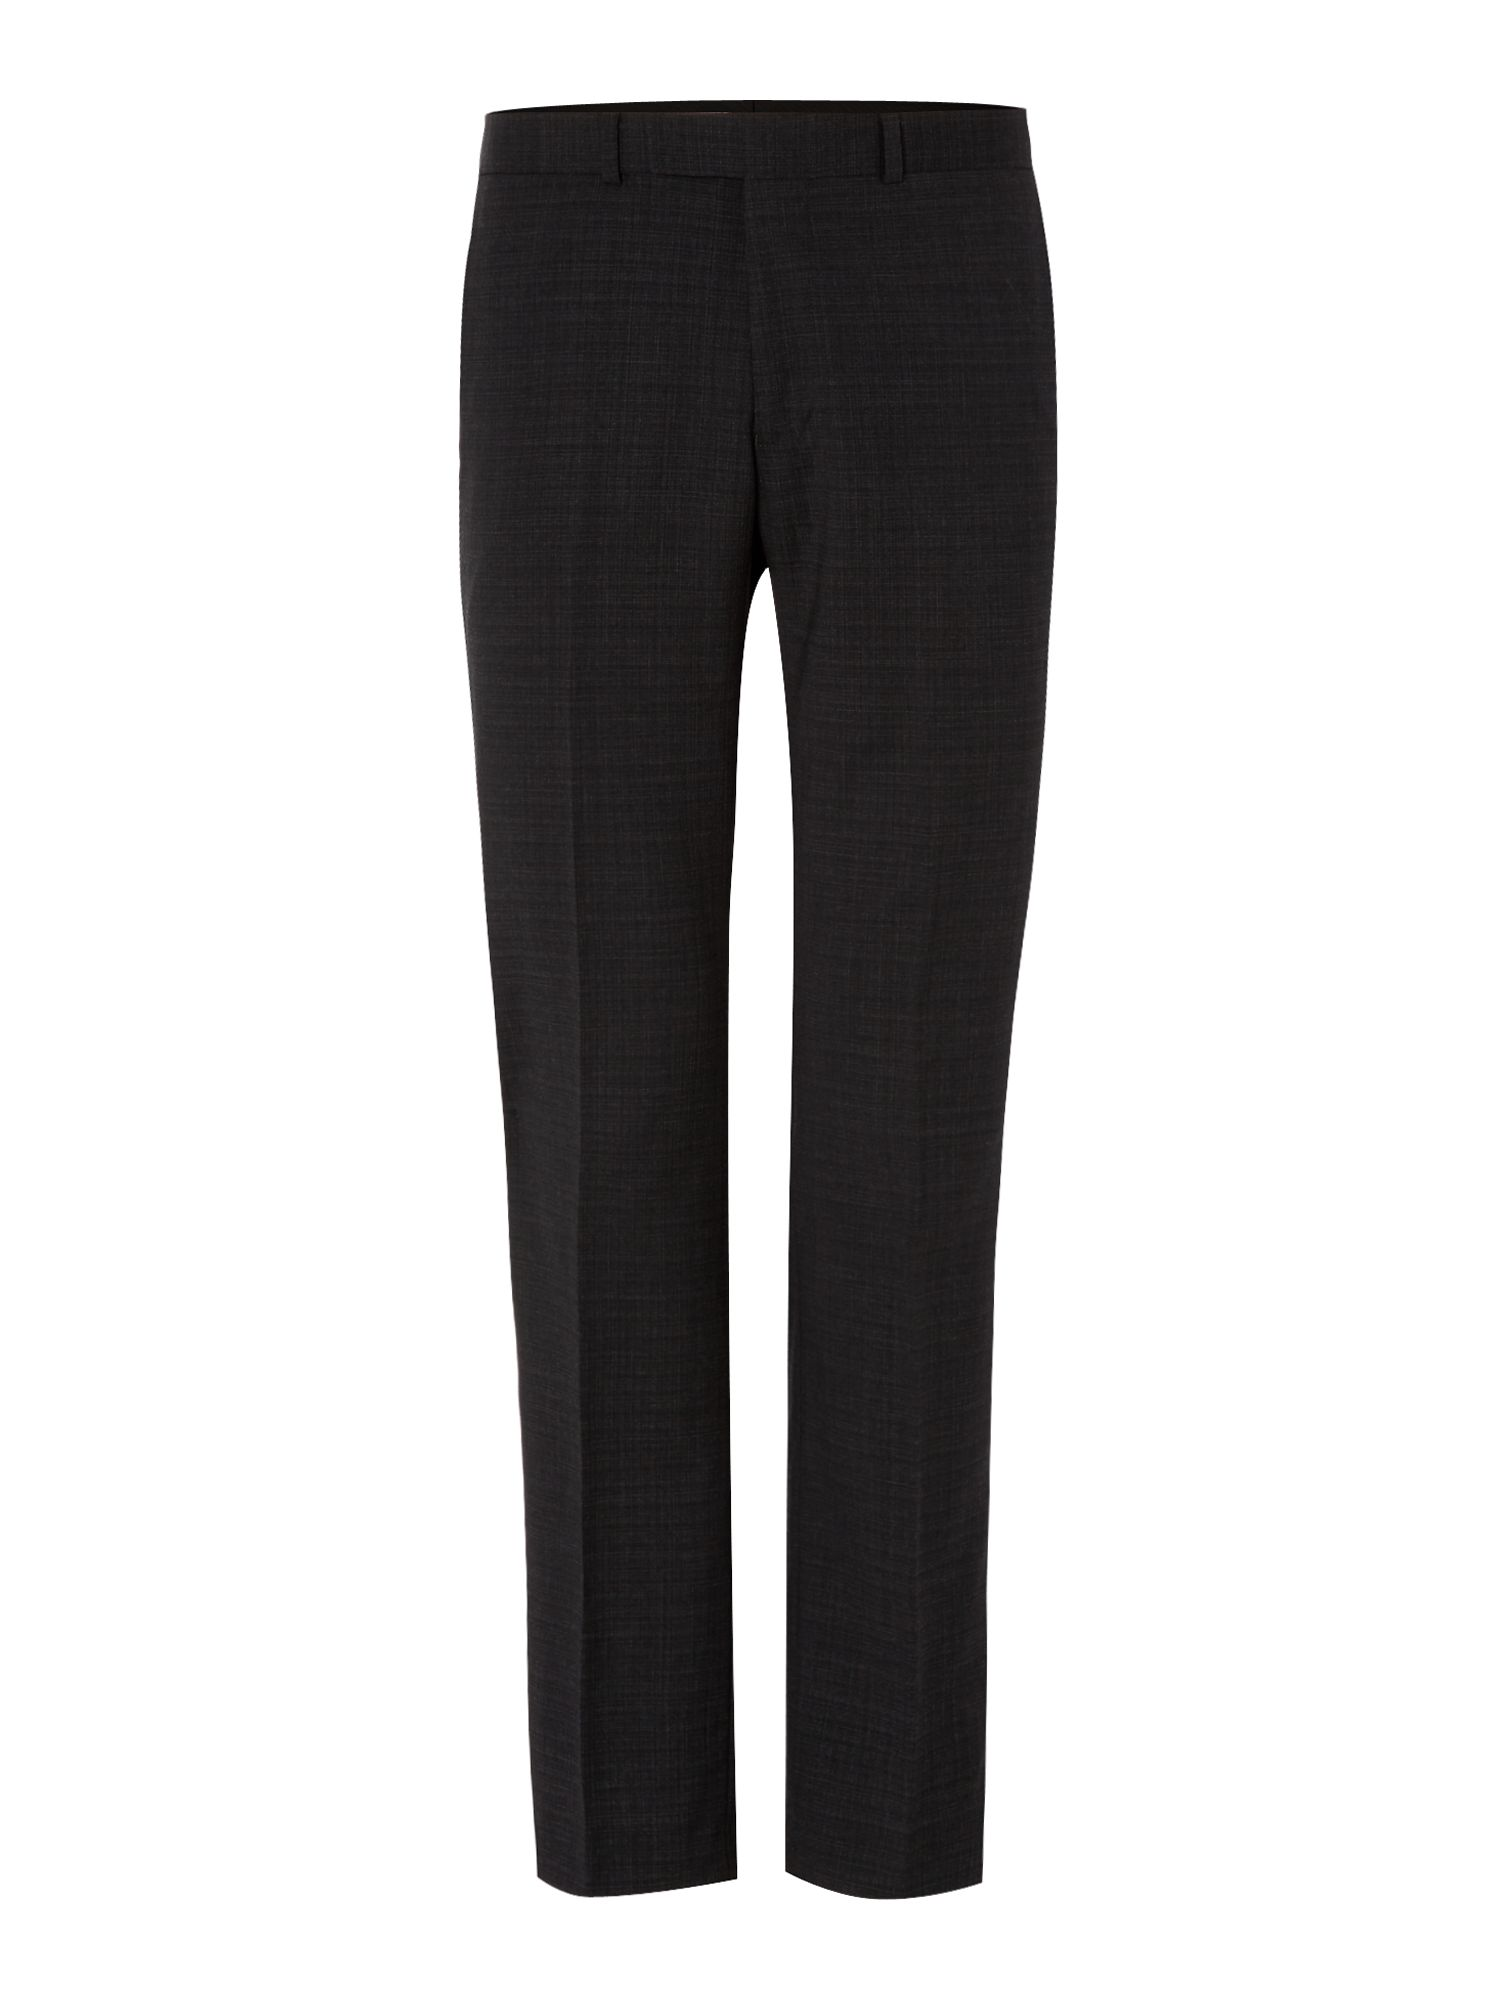 Hamilton Cross Hatch Suit Trousers